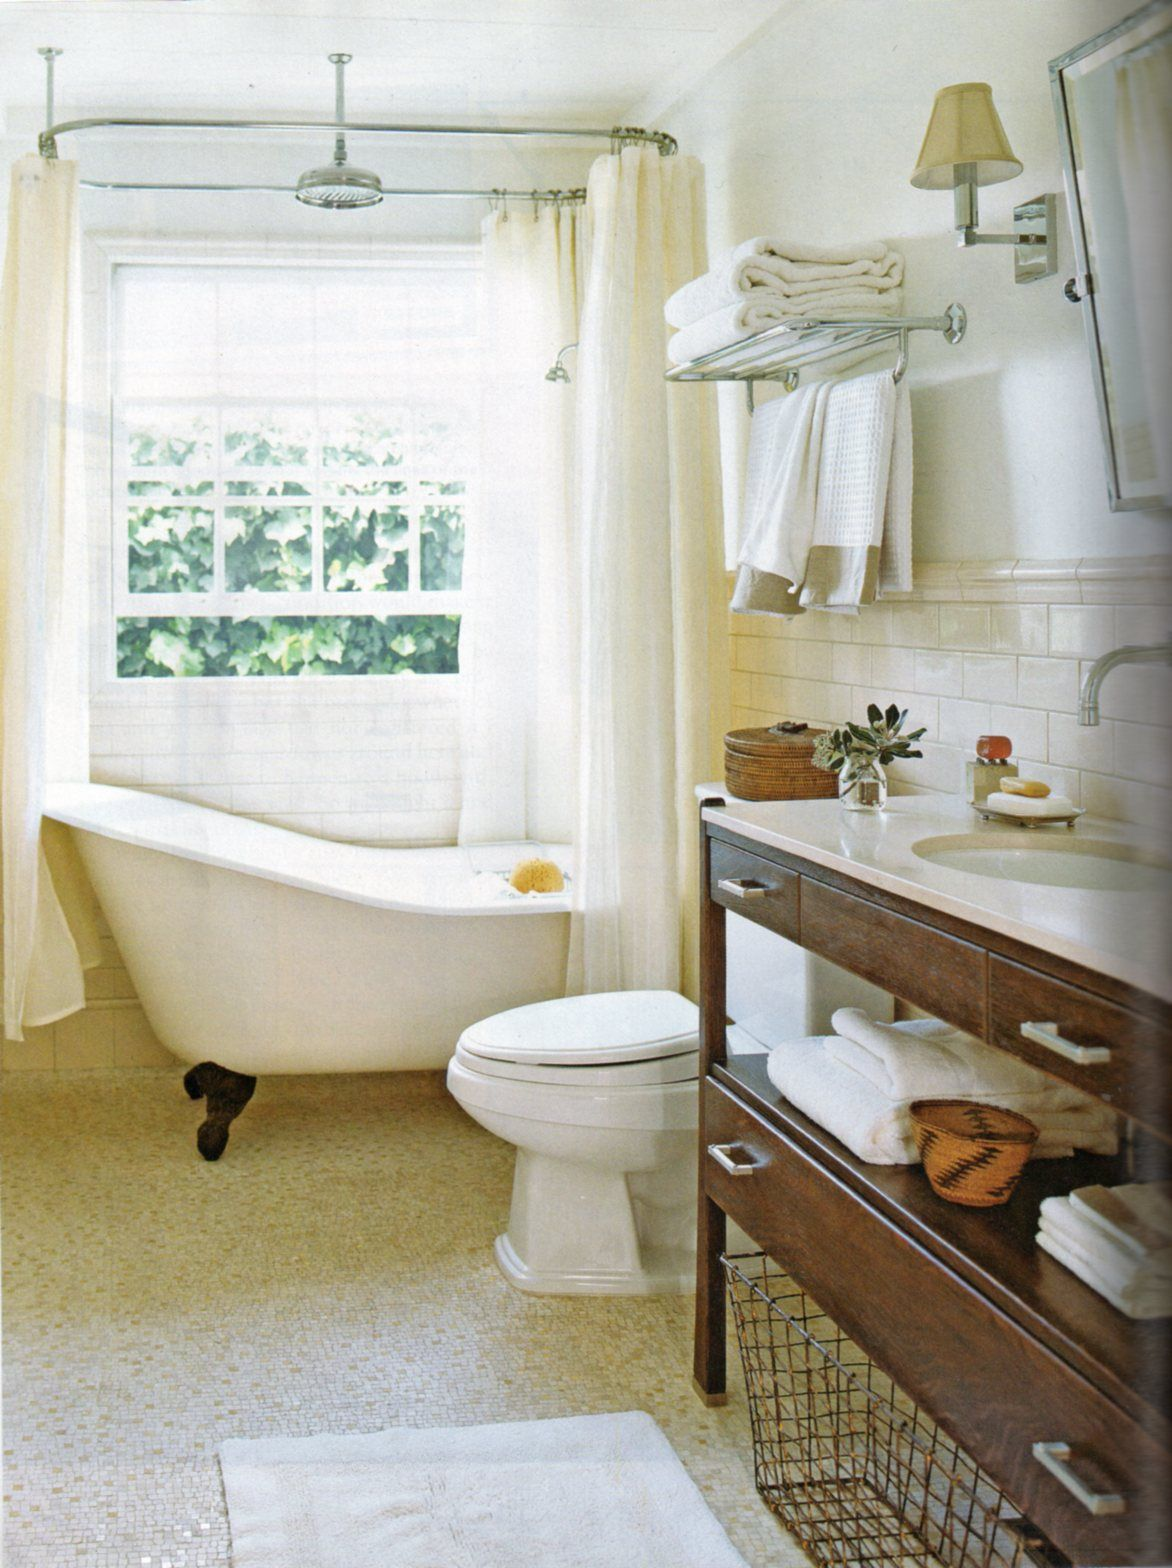 clawfoot tub bathroom ideas. Farmhouse Bathroom Clawfoot Tub Ideas R